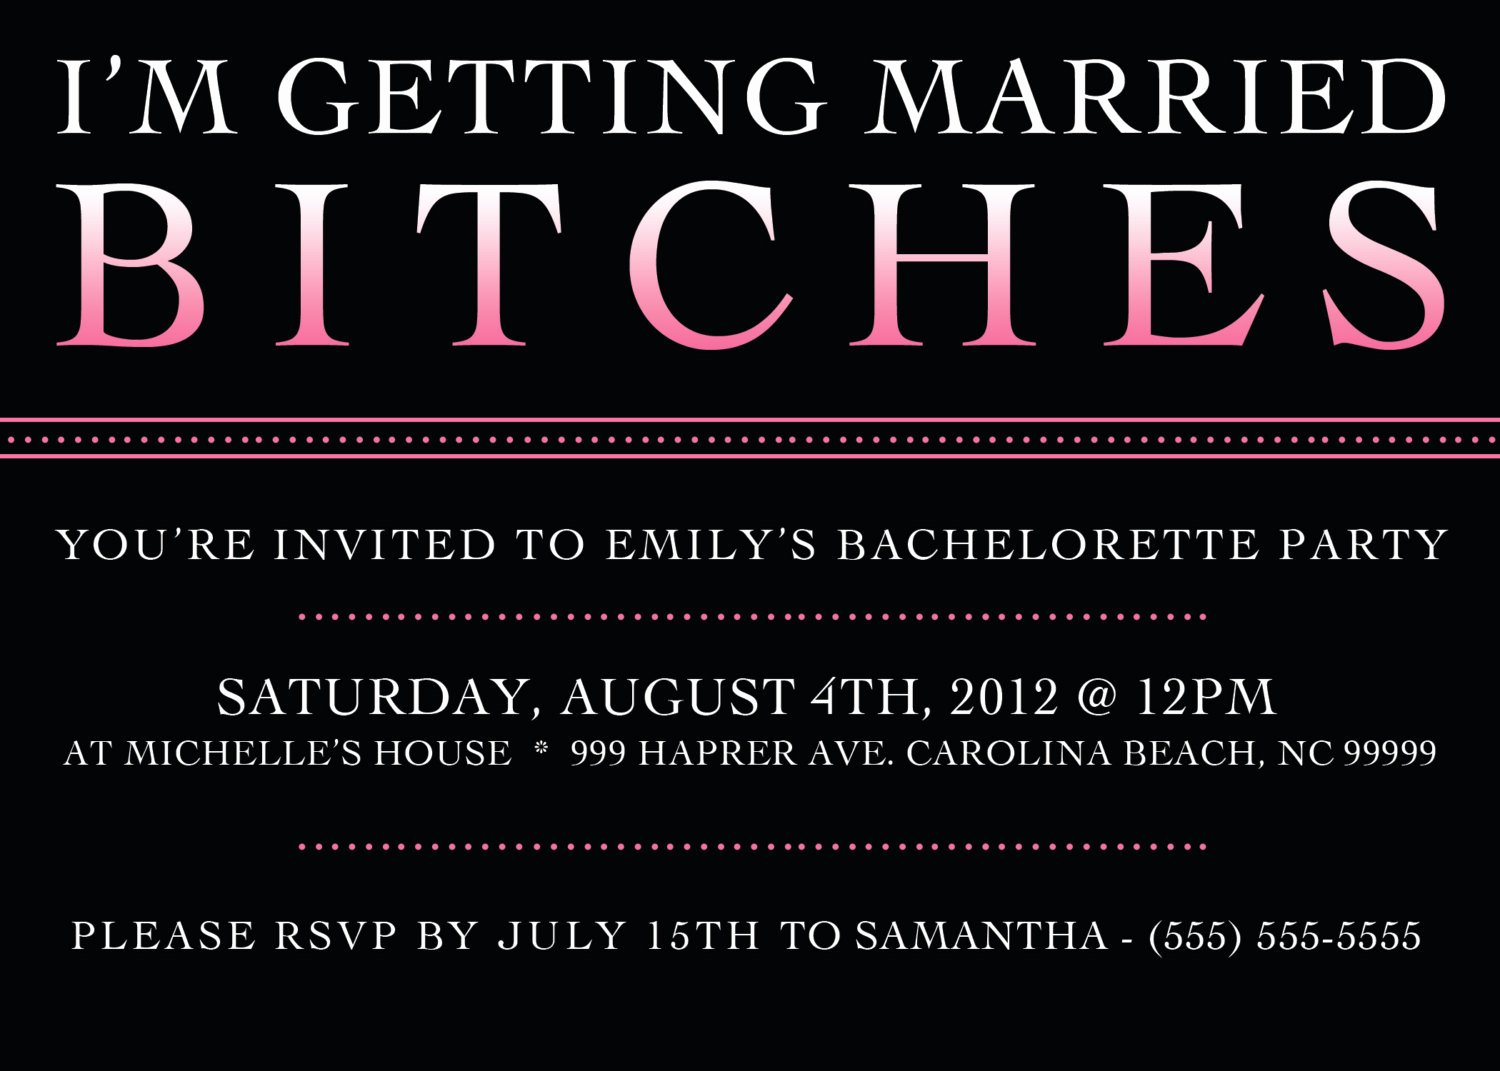 Bachelorette Party Invitation Template Free Beautiful Printable Bachelorette Party Invitation 5 X 7 by